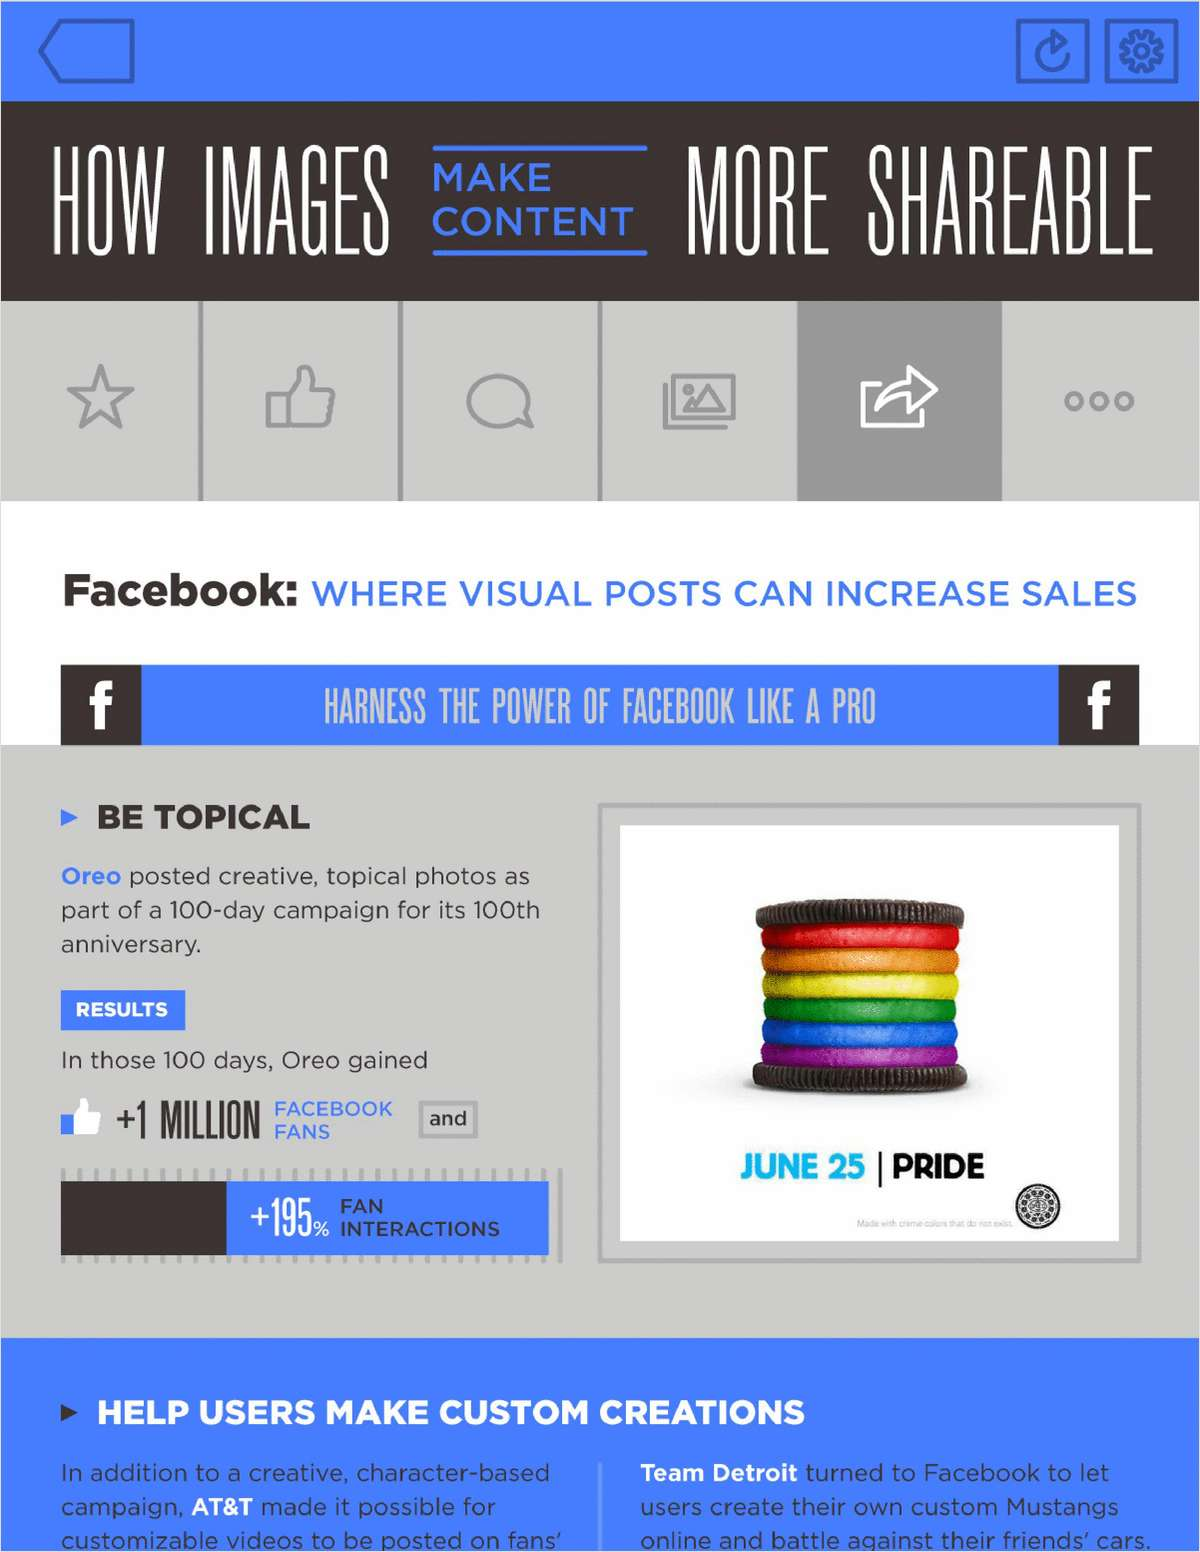 How Images Make Content More Shareable